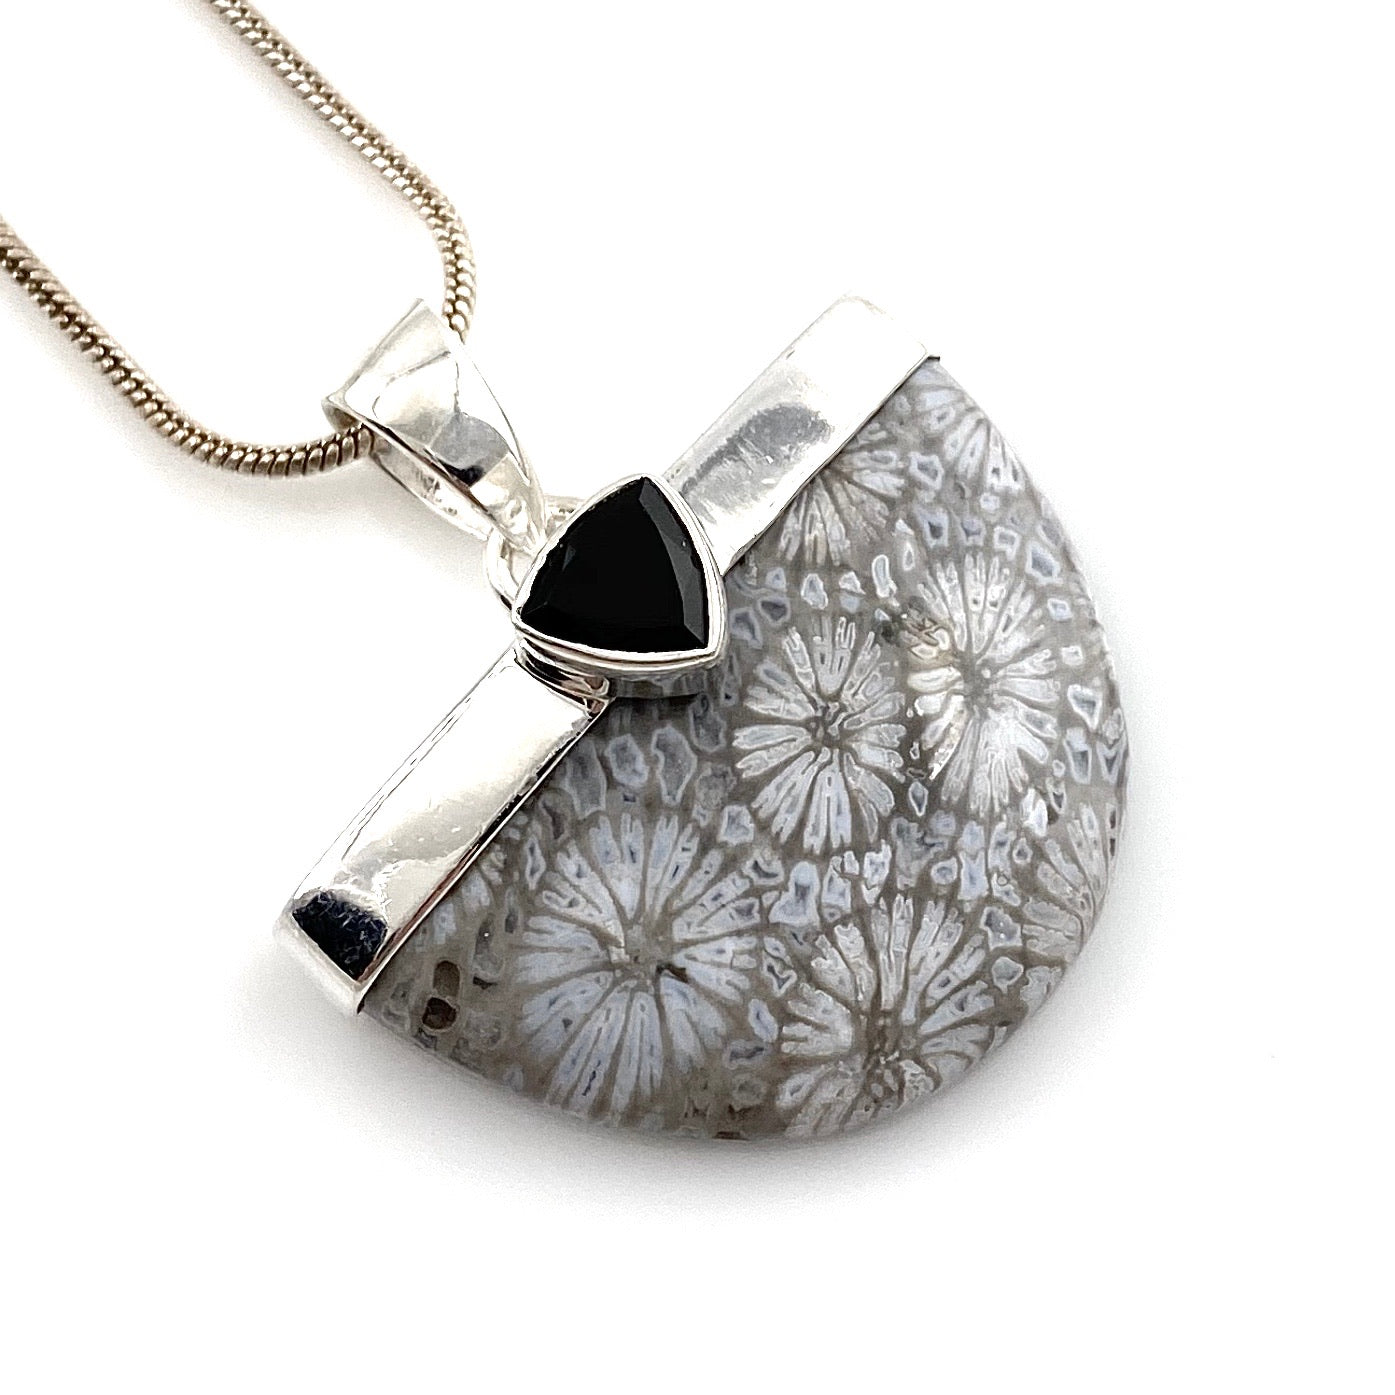 Fossilized Coral & Black Onyx Sterling Silver Pendant - Keja Designs Jewelry